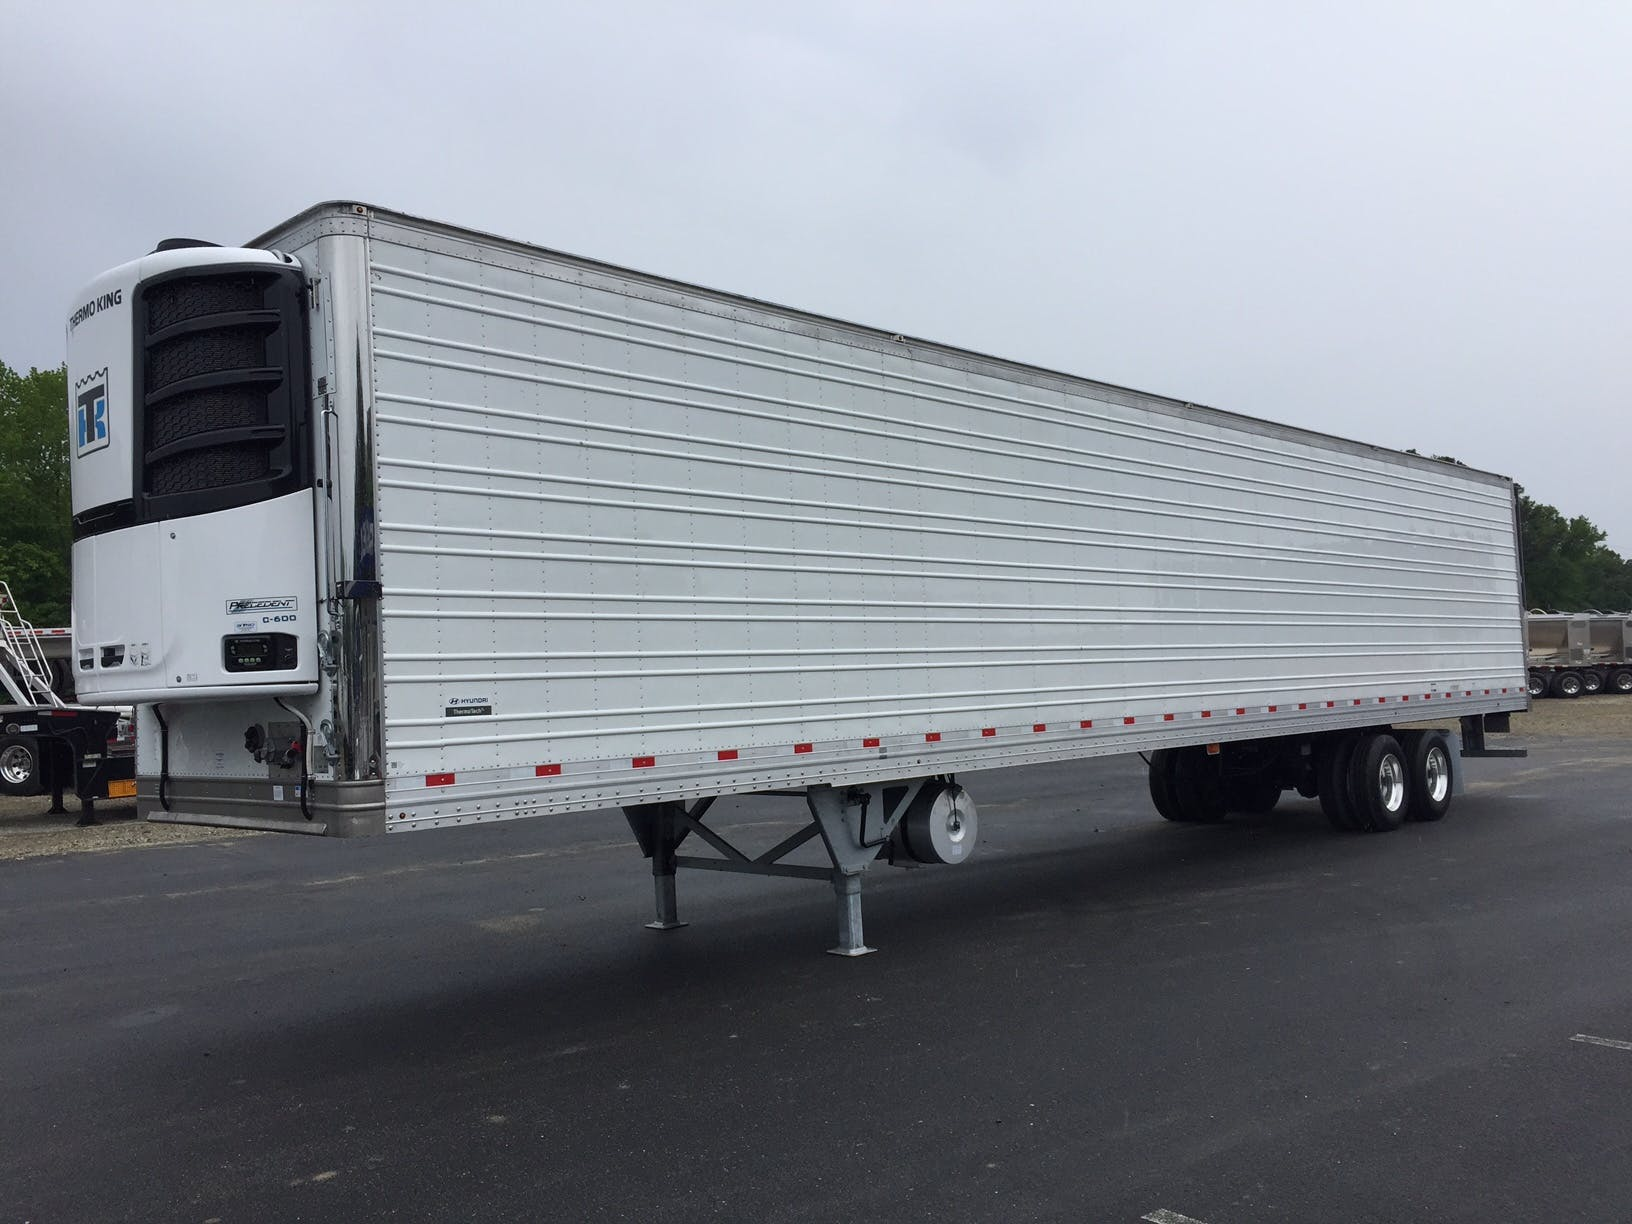 2020 HYUNDAI REEFER TRAILER #643534